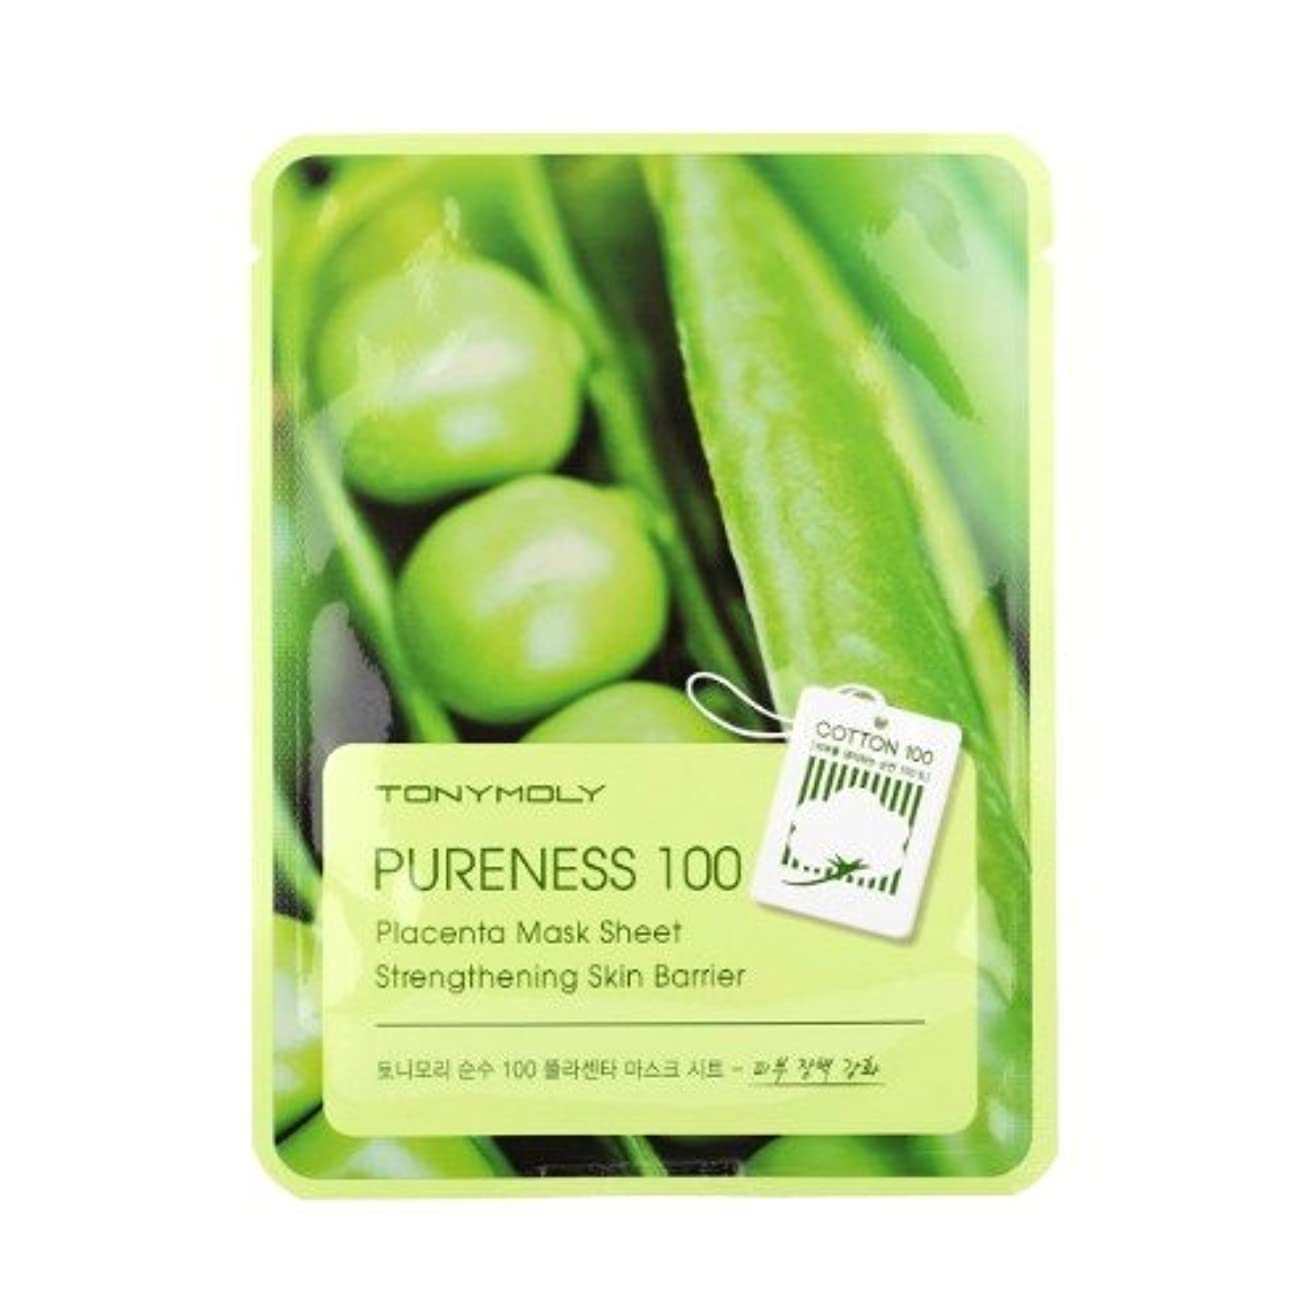 教師の日節約する元気(3 Pack) TONYMOLY Pureness 100 Placenta Mask Sheet Strengthening Skin Barrier (並行輸入品)